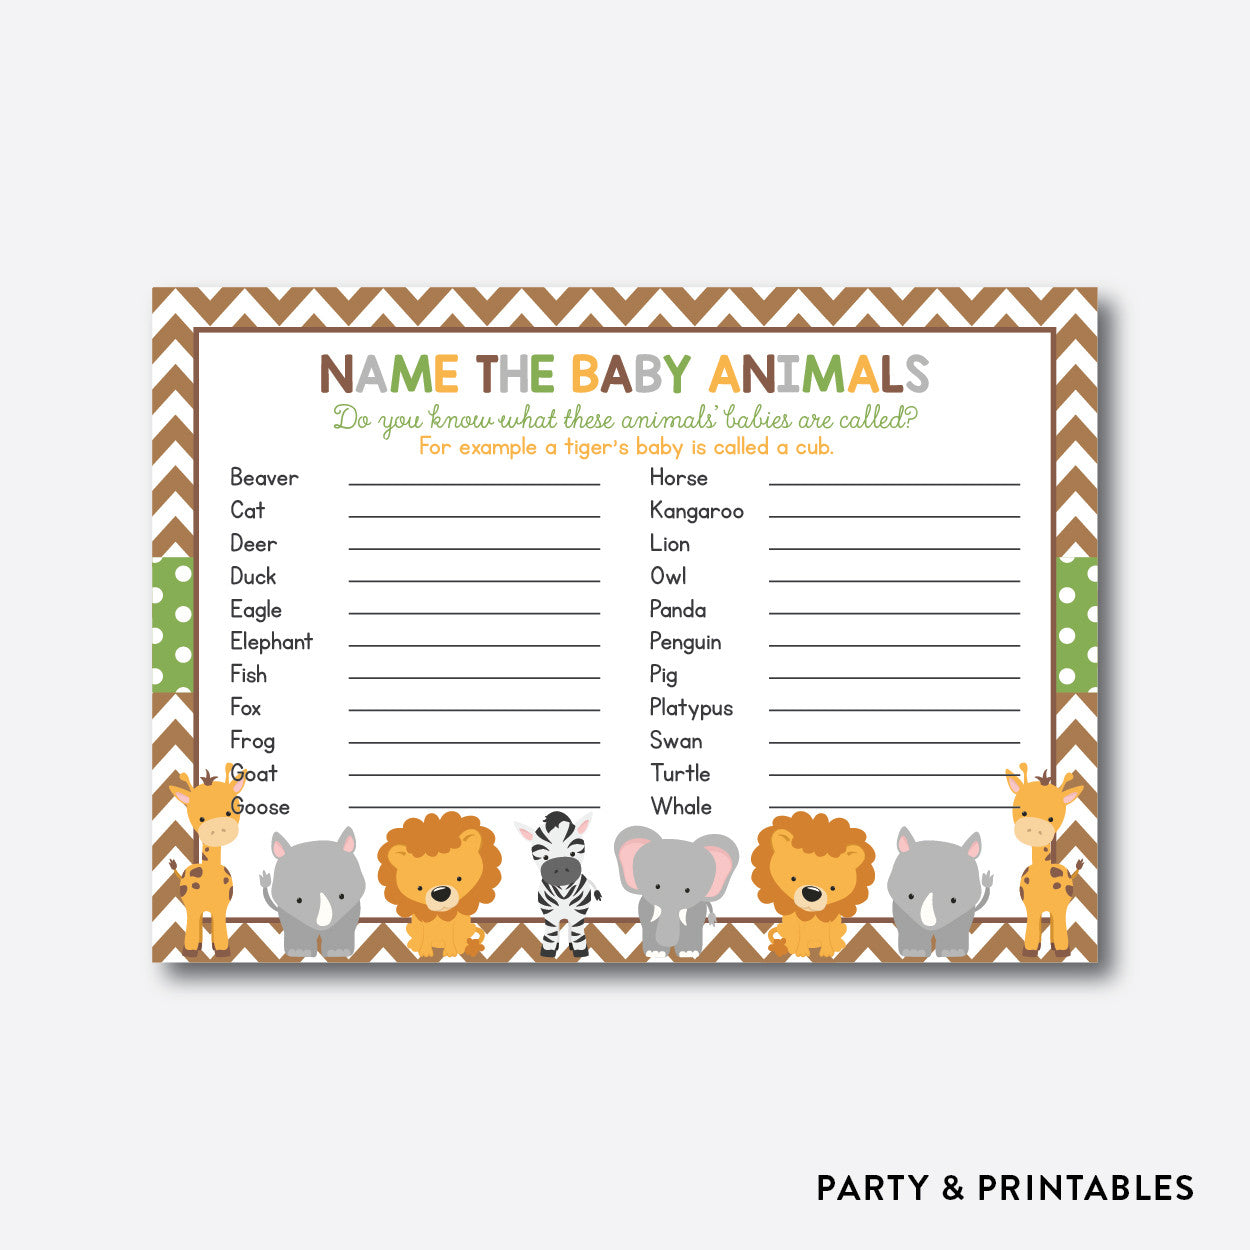 Baby Safari Name The Baby Animals / Non-Personalized / Instant Download (SBS.31), party printables - Party and Printables